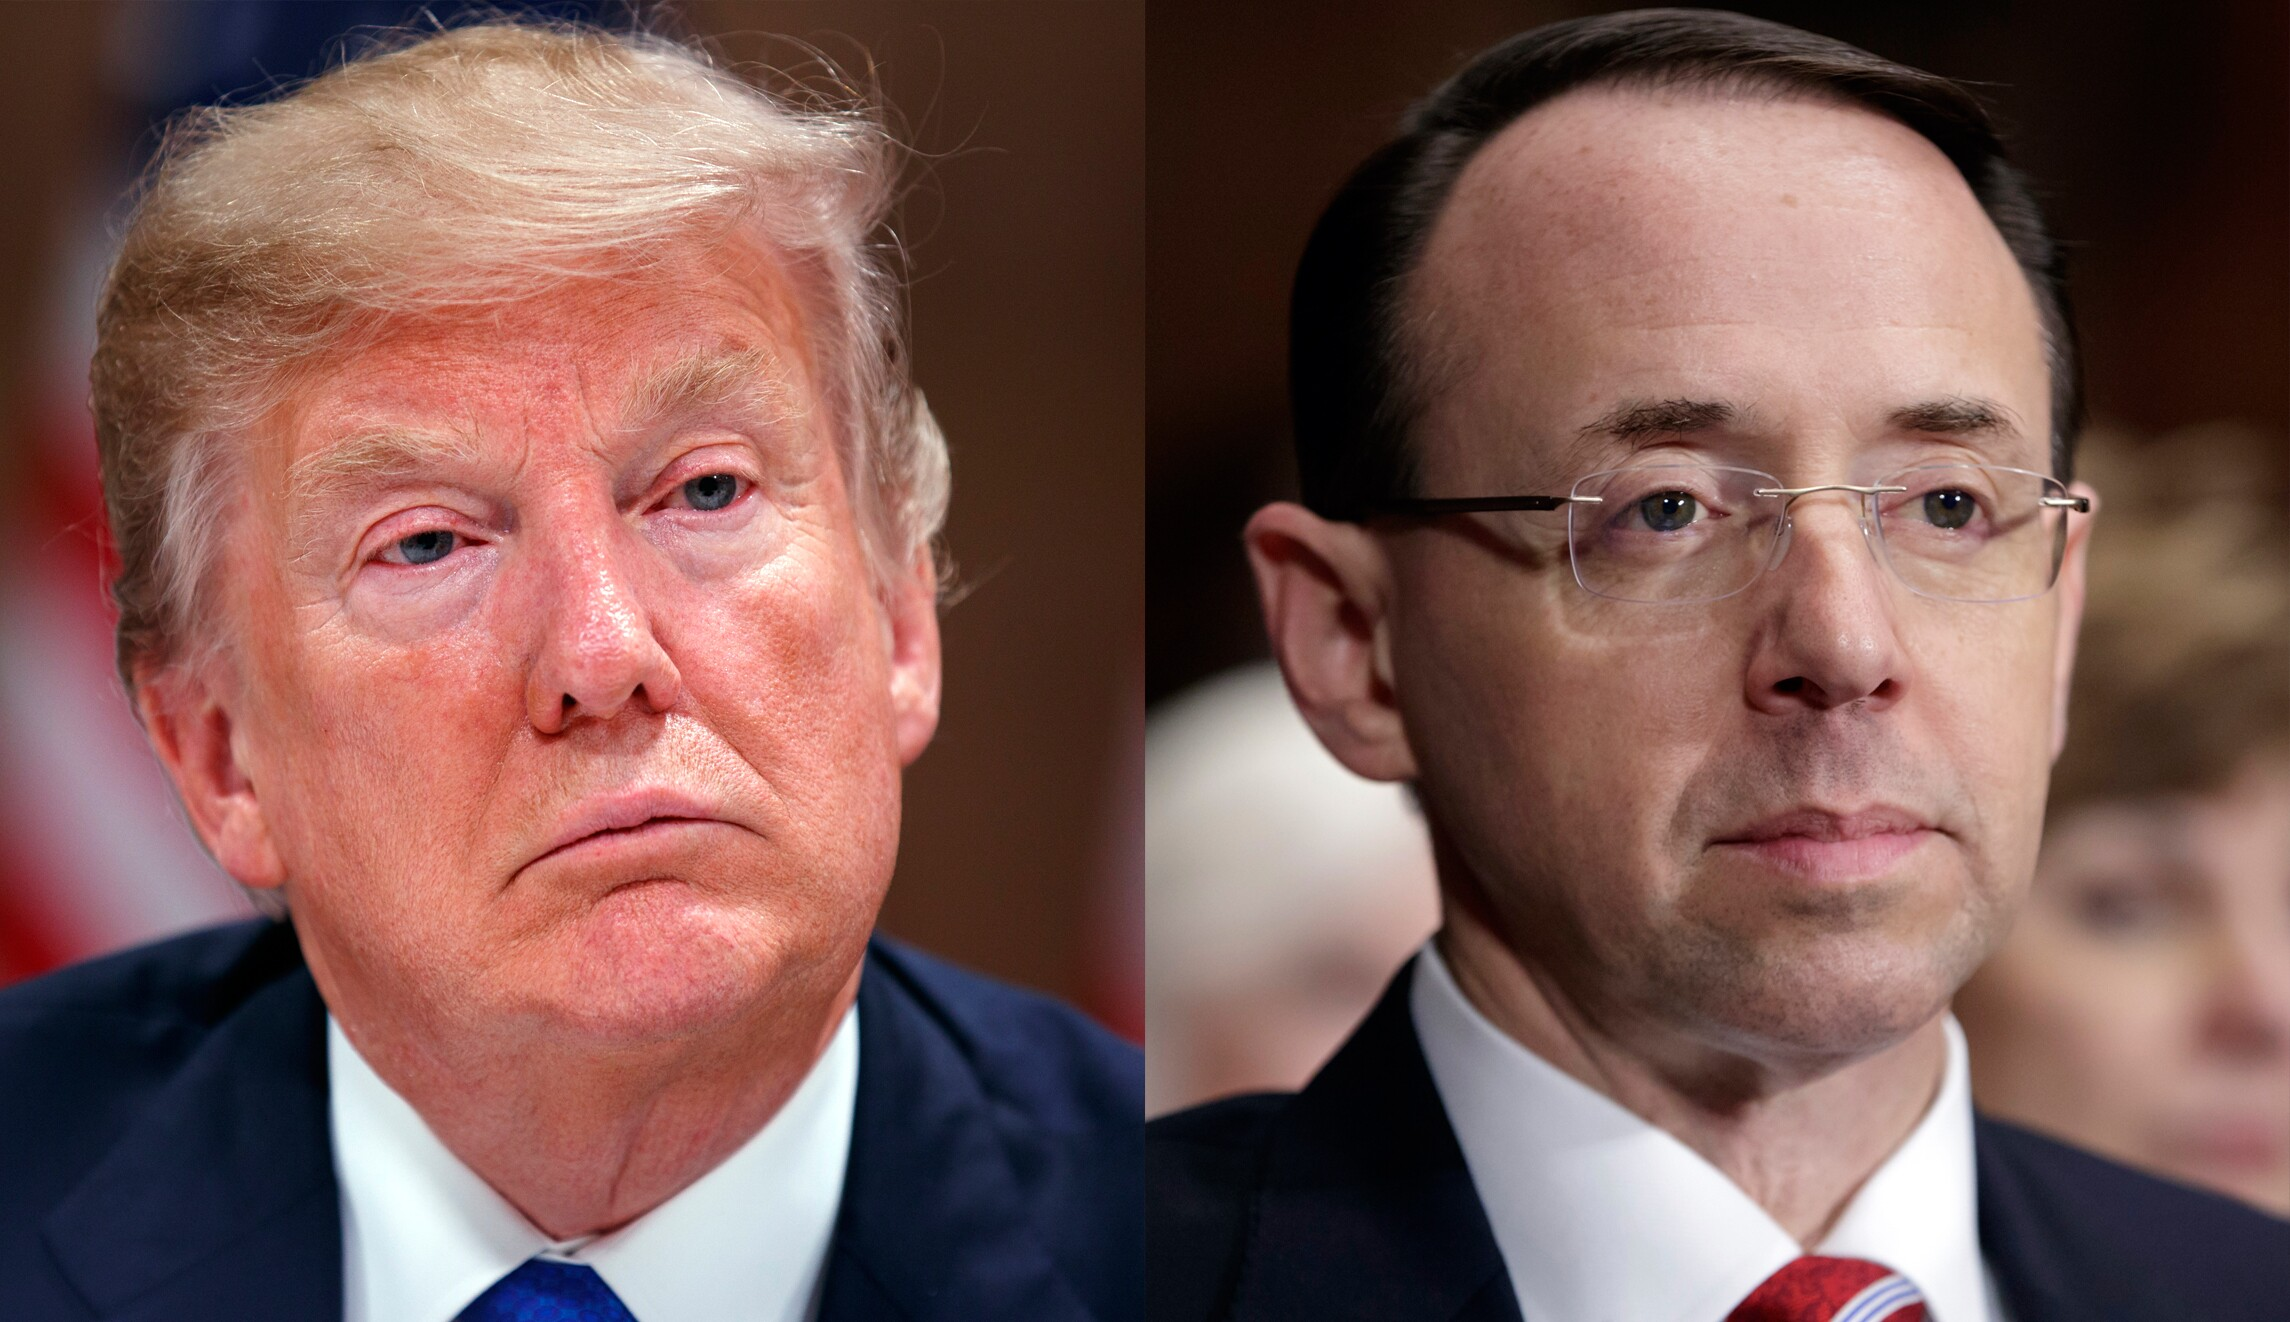 Image result for PHOTOS OF TRUMP GIULIANI ROSENSTEIN